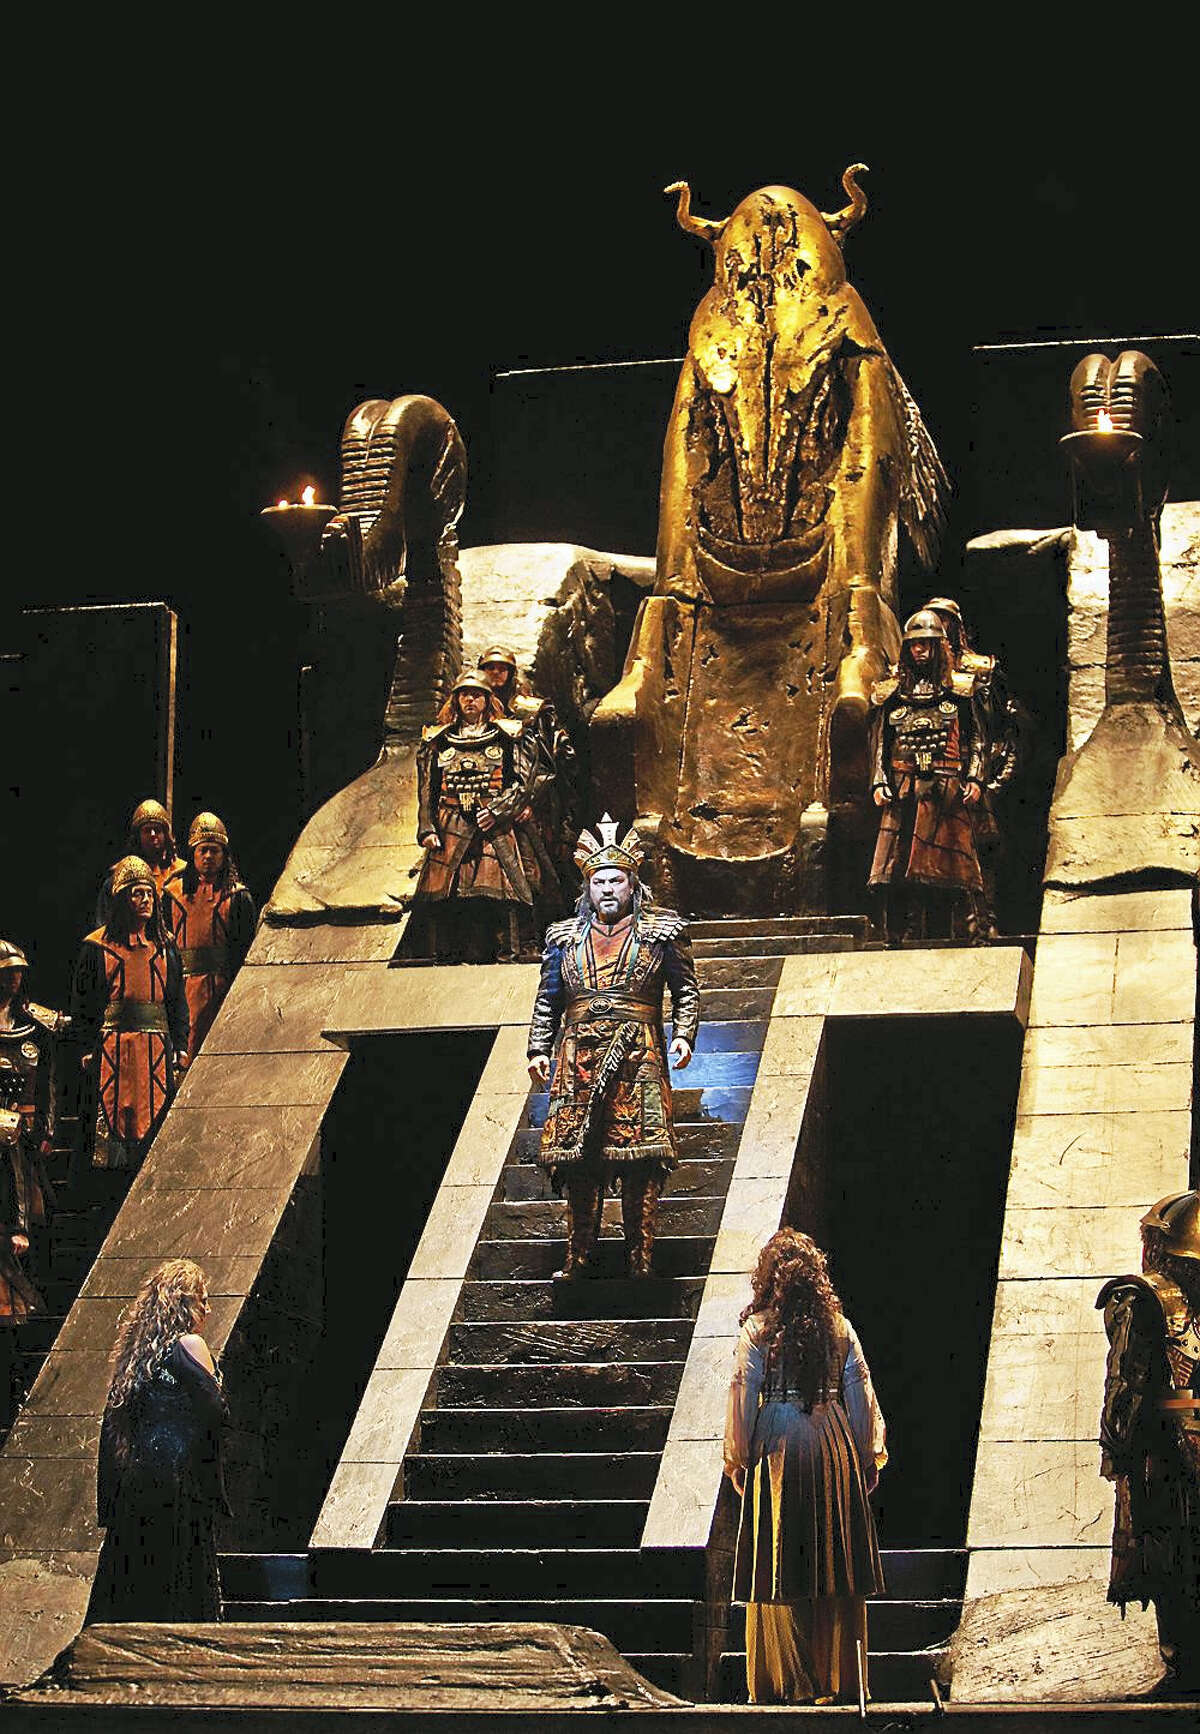 """Marty Sohl/Metropolitan Opera A scene from Verdi's """"Nabucco"""" with Zeljko Lucic in the title role, taken at the Metropolitan Opera during the rehearsal in 2011. The opera will be presented in HD at the Warner Theatre on Saturday, Jan. 7."""